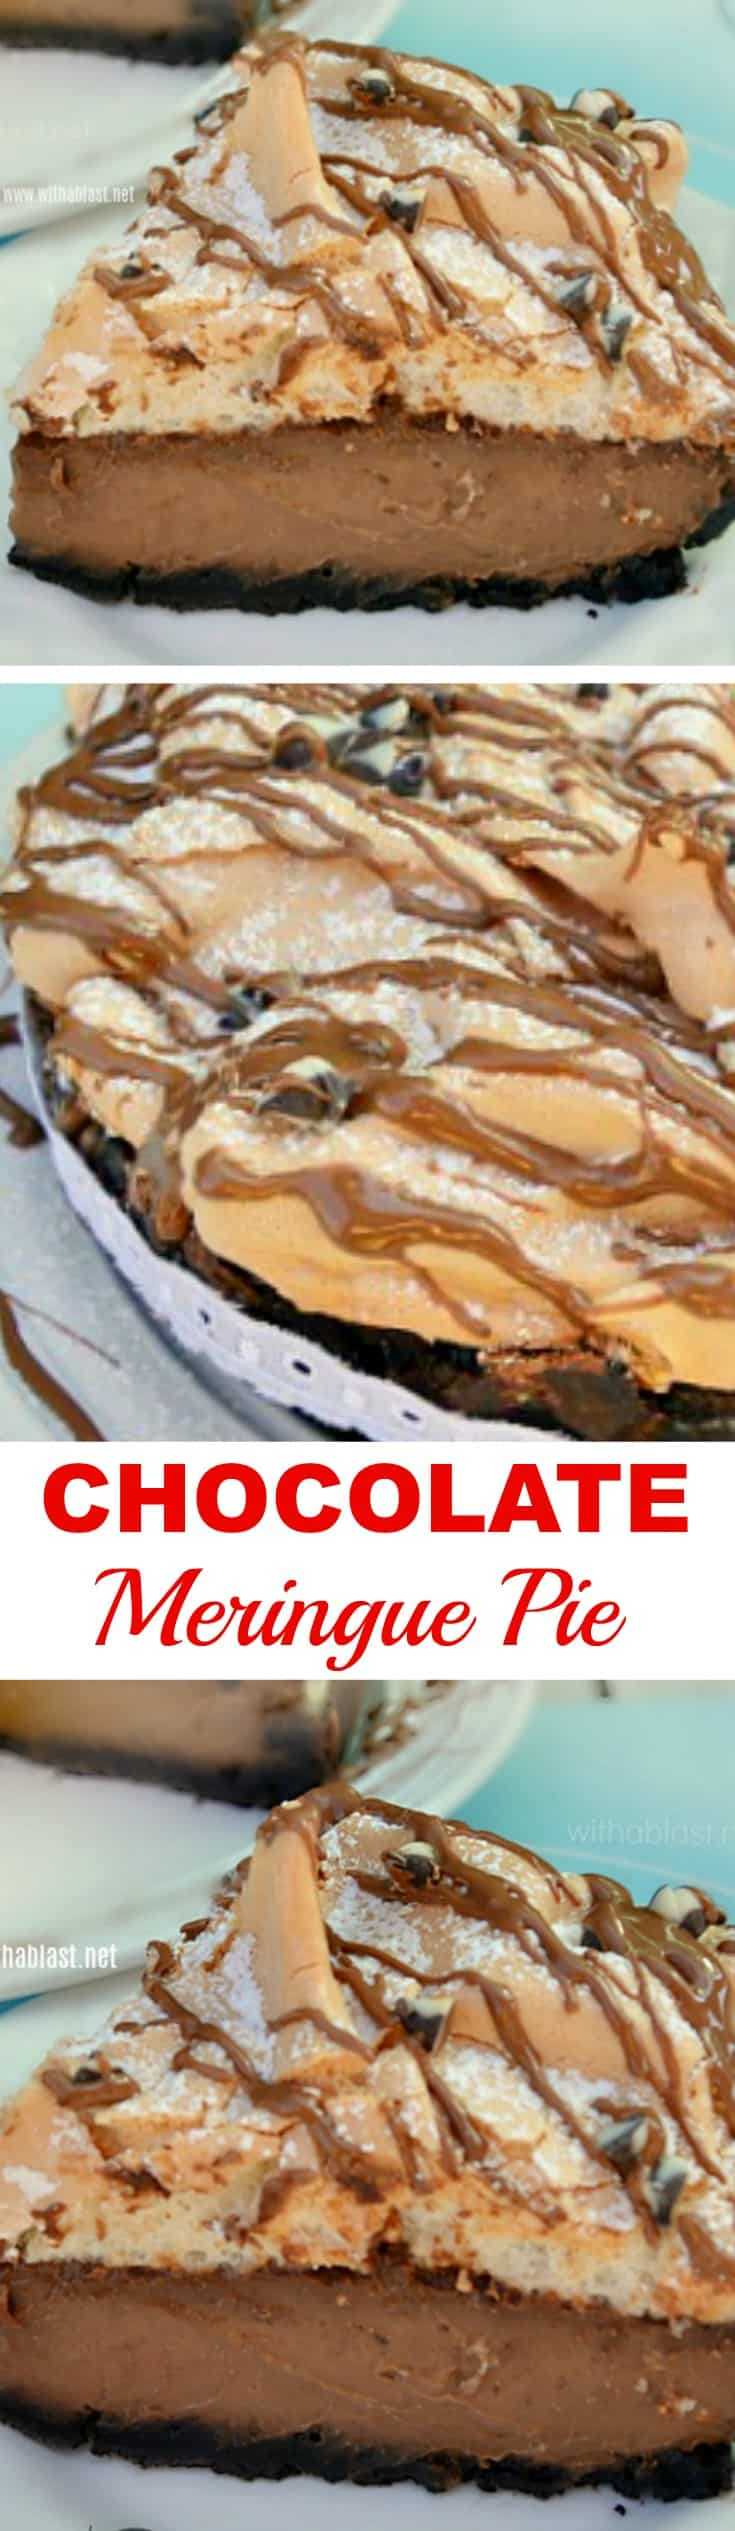 Chocolate Meringue Pie has a smooth, silky, almost ganache-like filling with a bit of an unusual, divine Meringue topping - so easy to make! #ChocolatePie #ChocolateMeringue